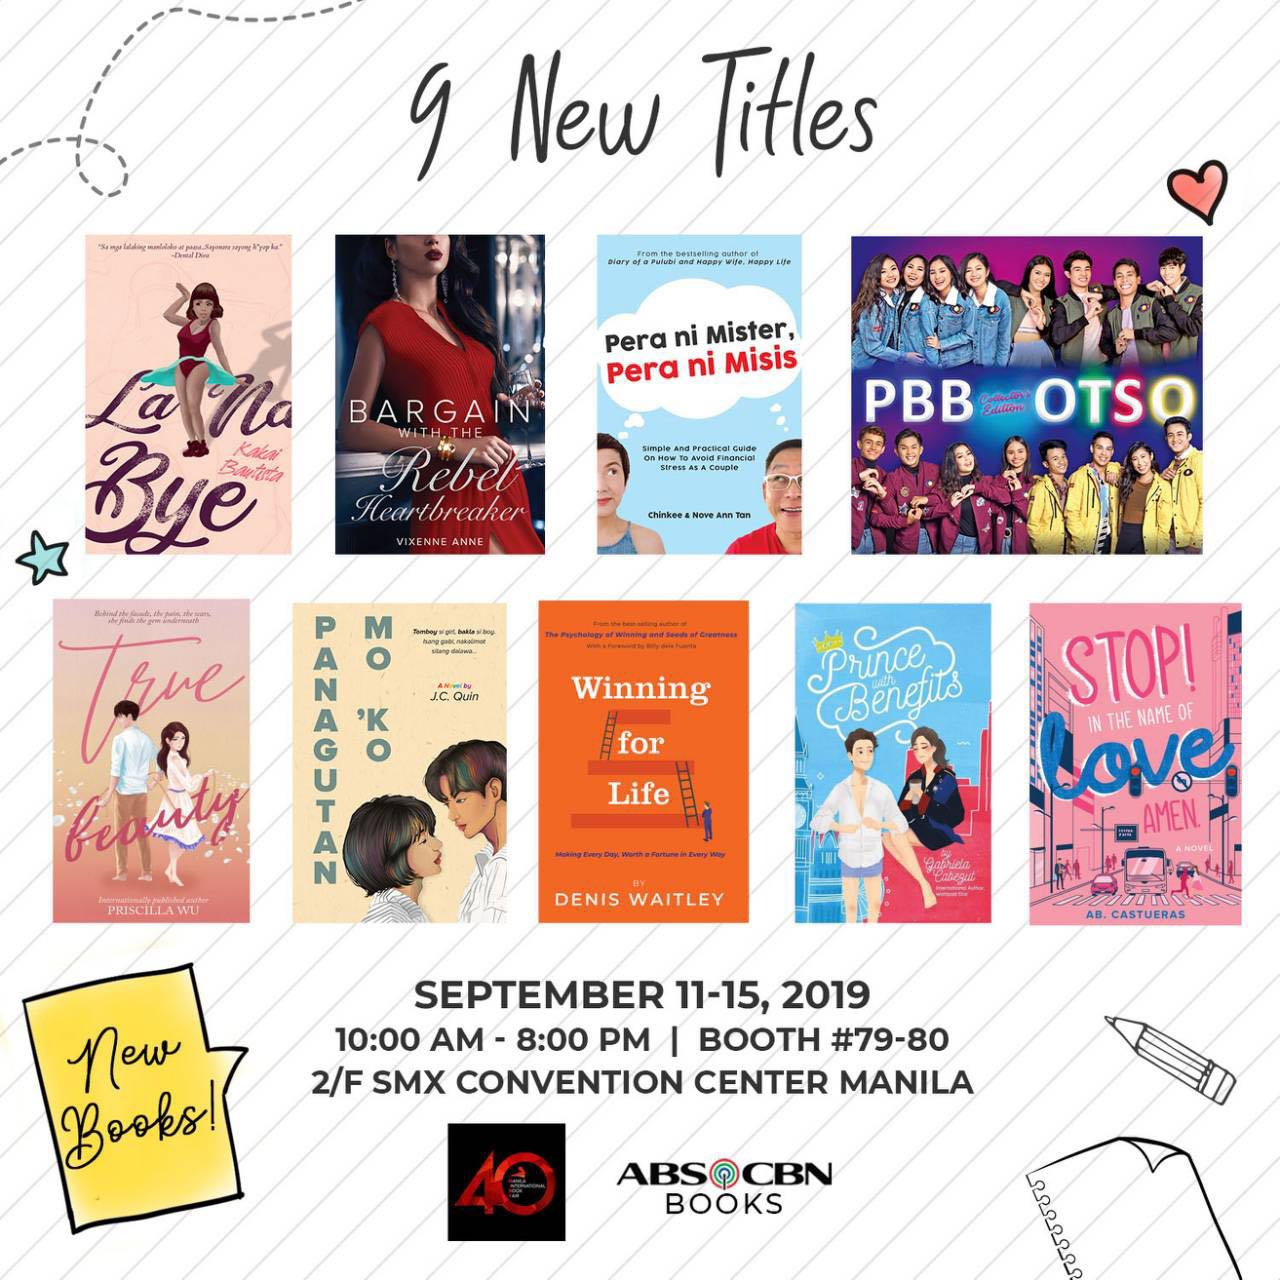 NEW READS FROM ABS CBN BOOKS